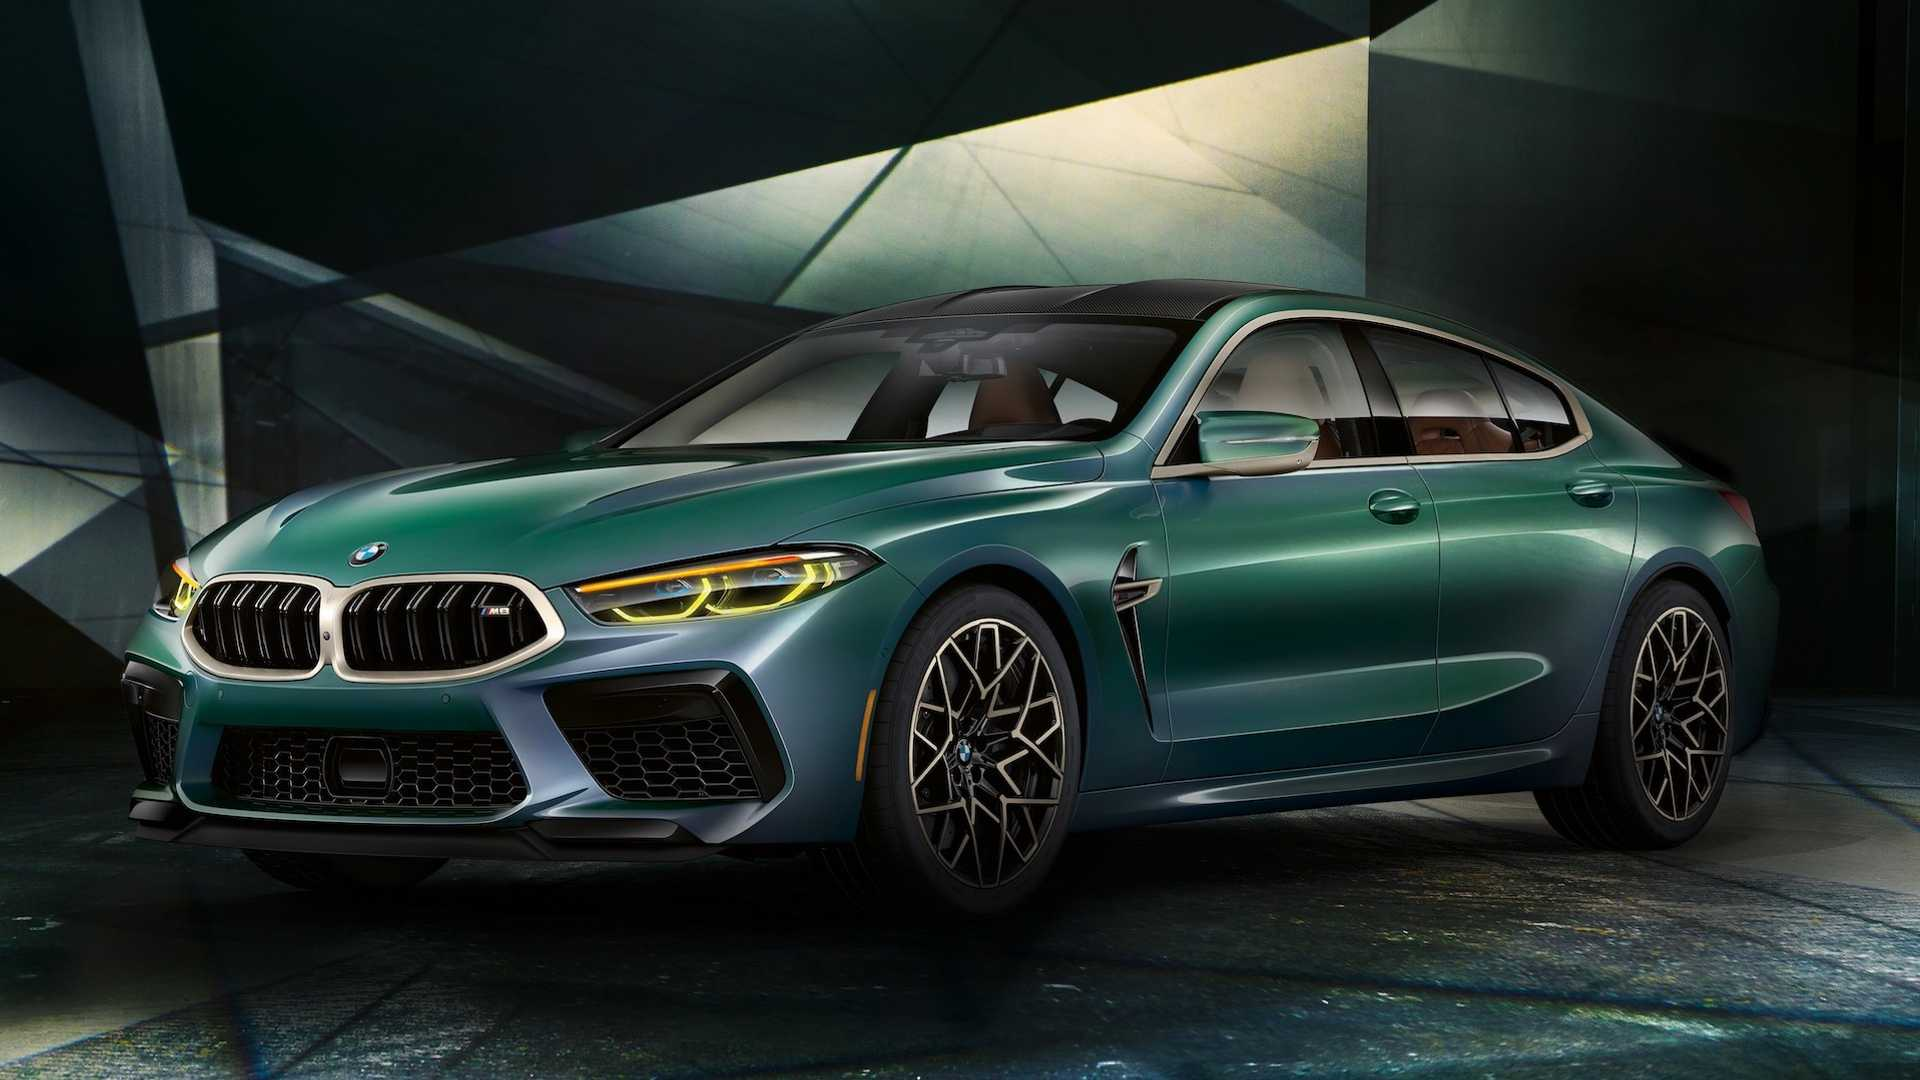 2020-bmw-m8-gran-coupe-competition-2